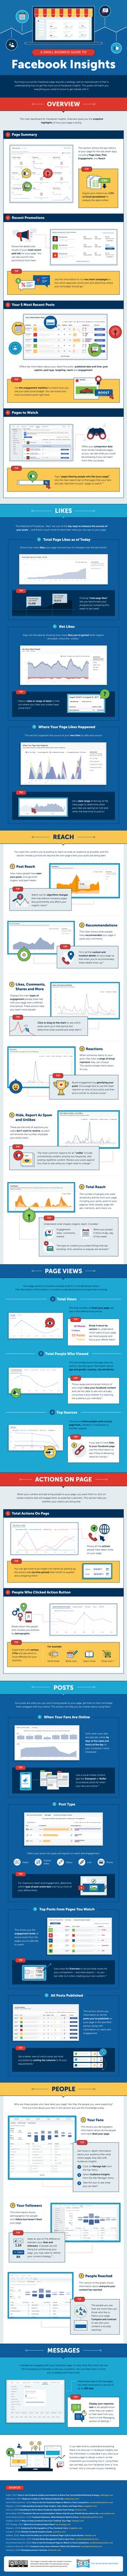 A Small Business Guide to Facebook Insights [Infographic] | Social Media Today